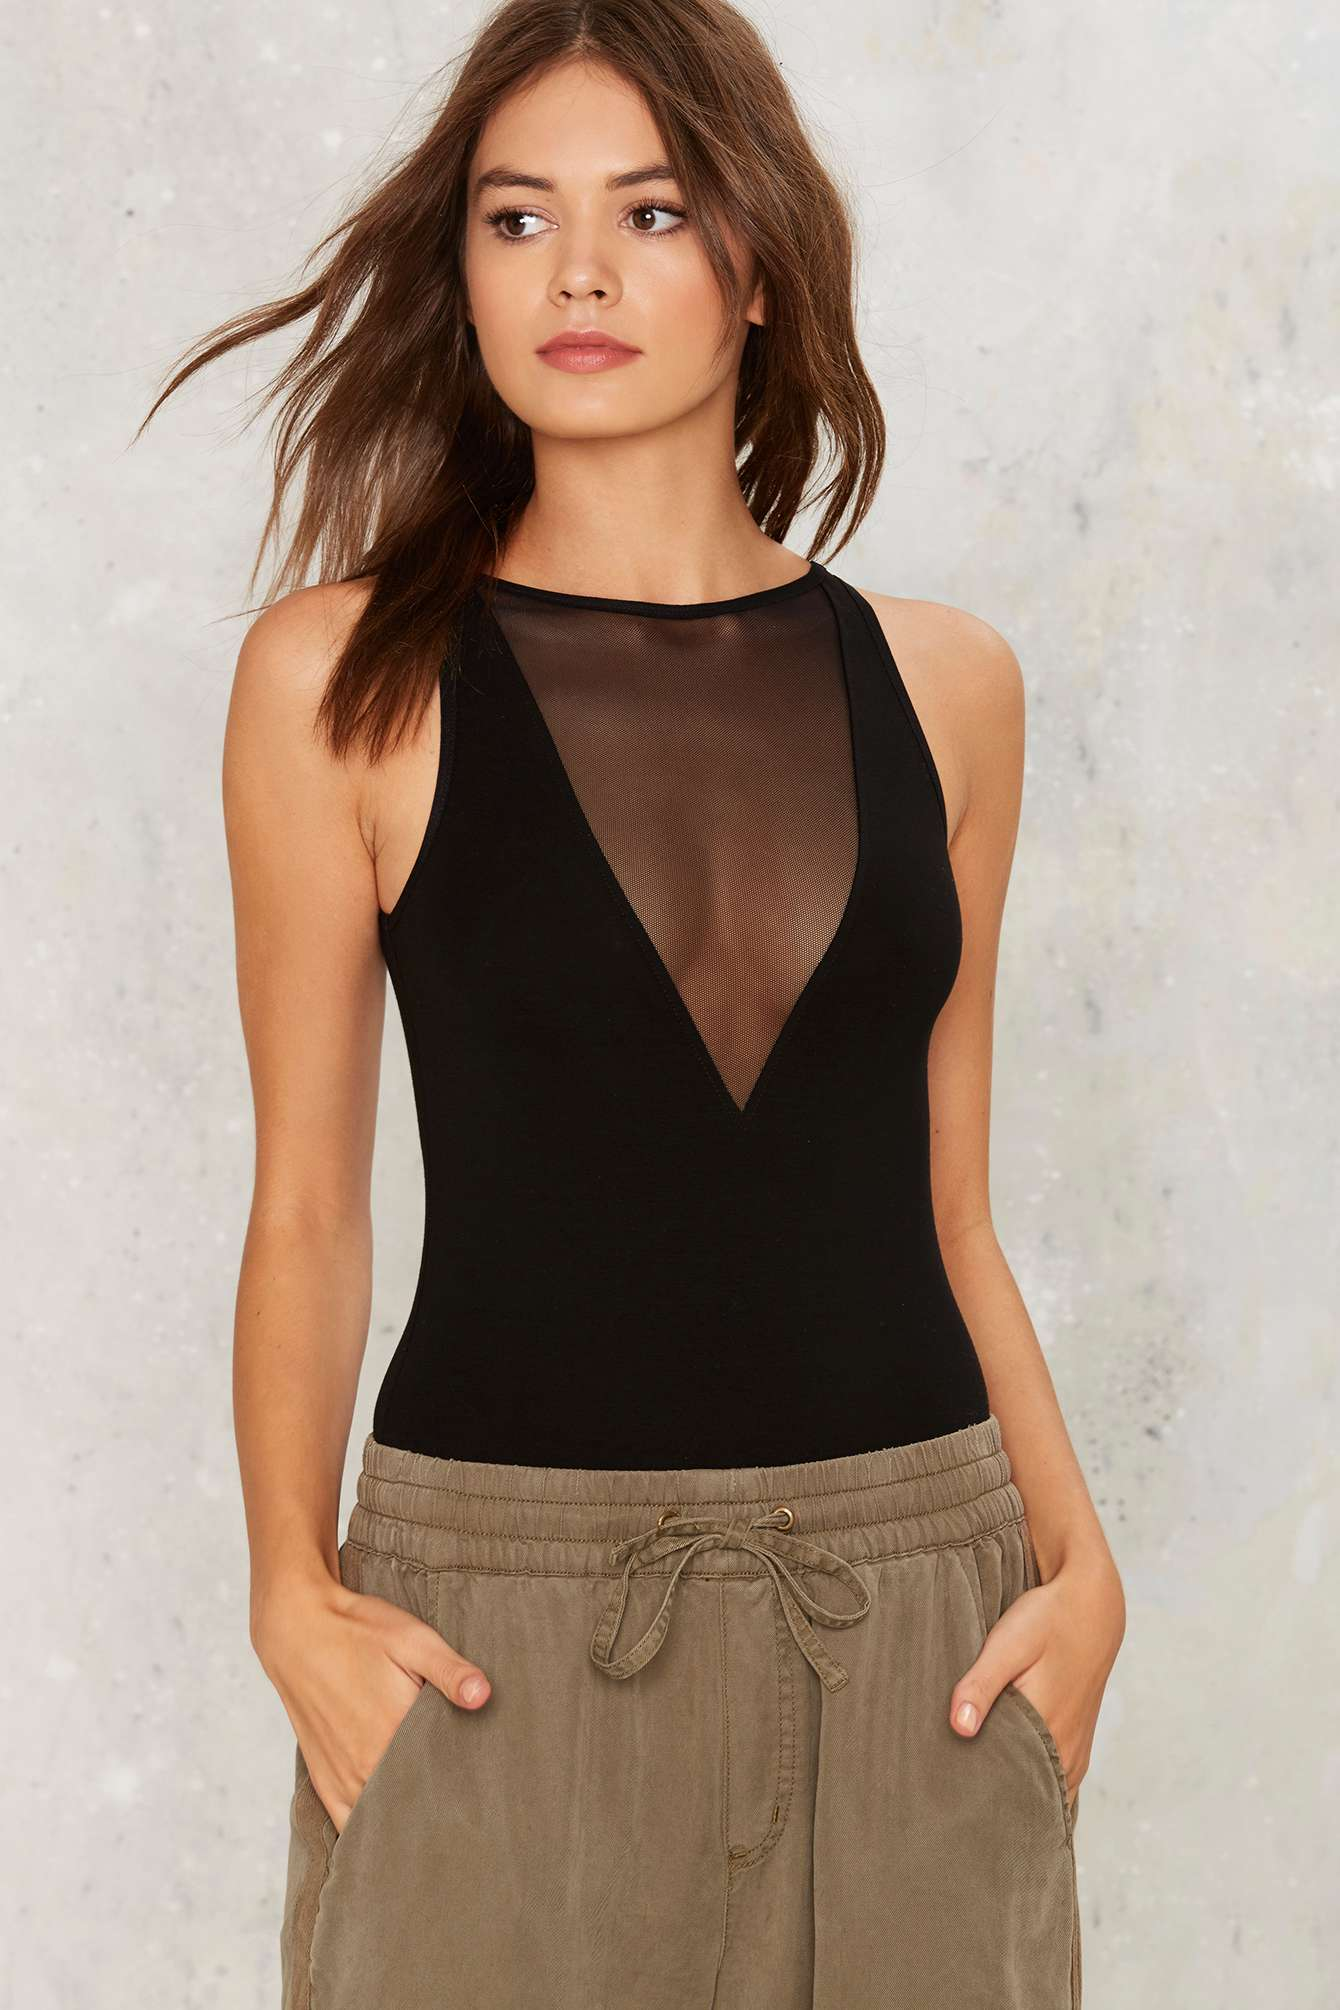 Nasty Gal Insert Dreams Here Mesh Bodysuit